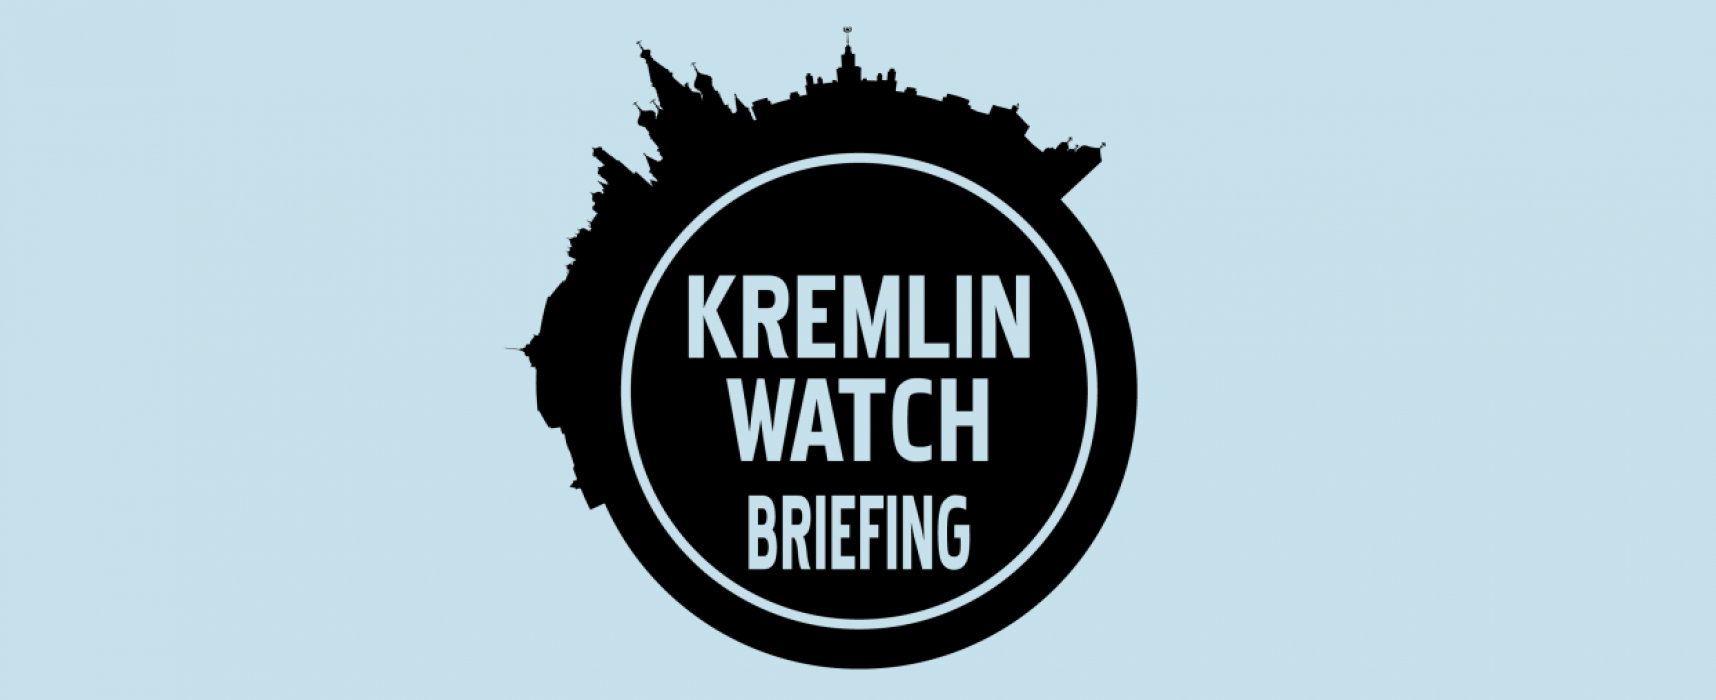 Kremlin Watch Briefing: Online platforms should provide more access to information for researchers